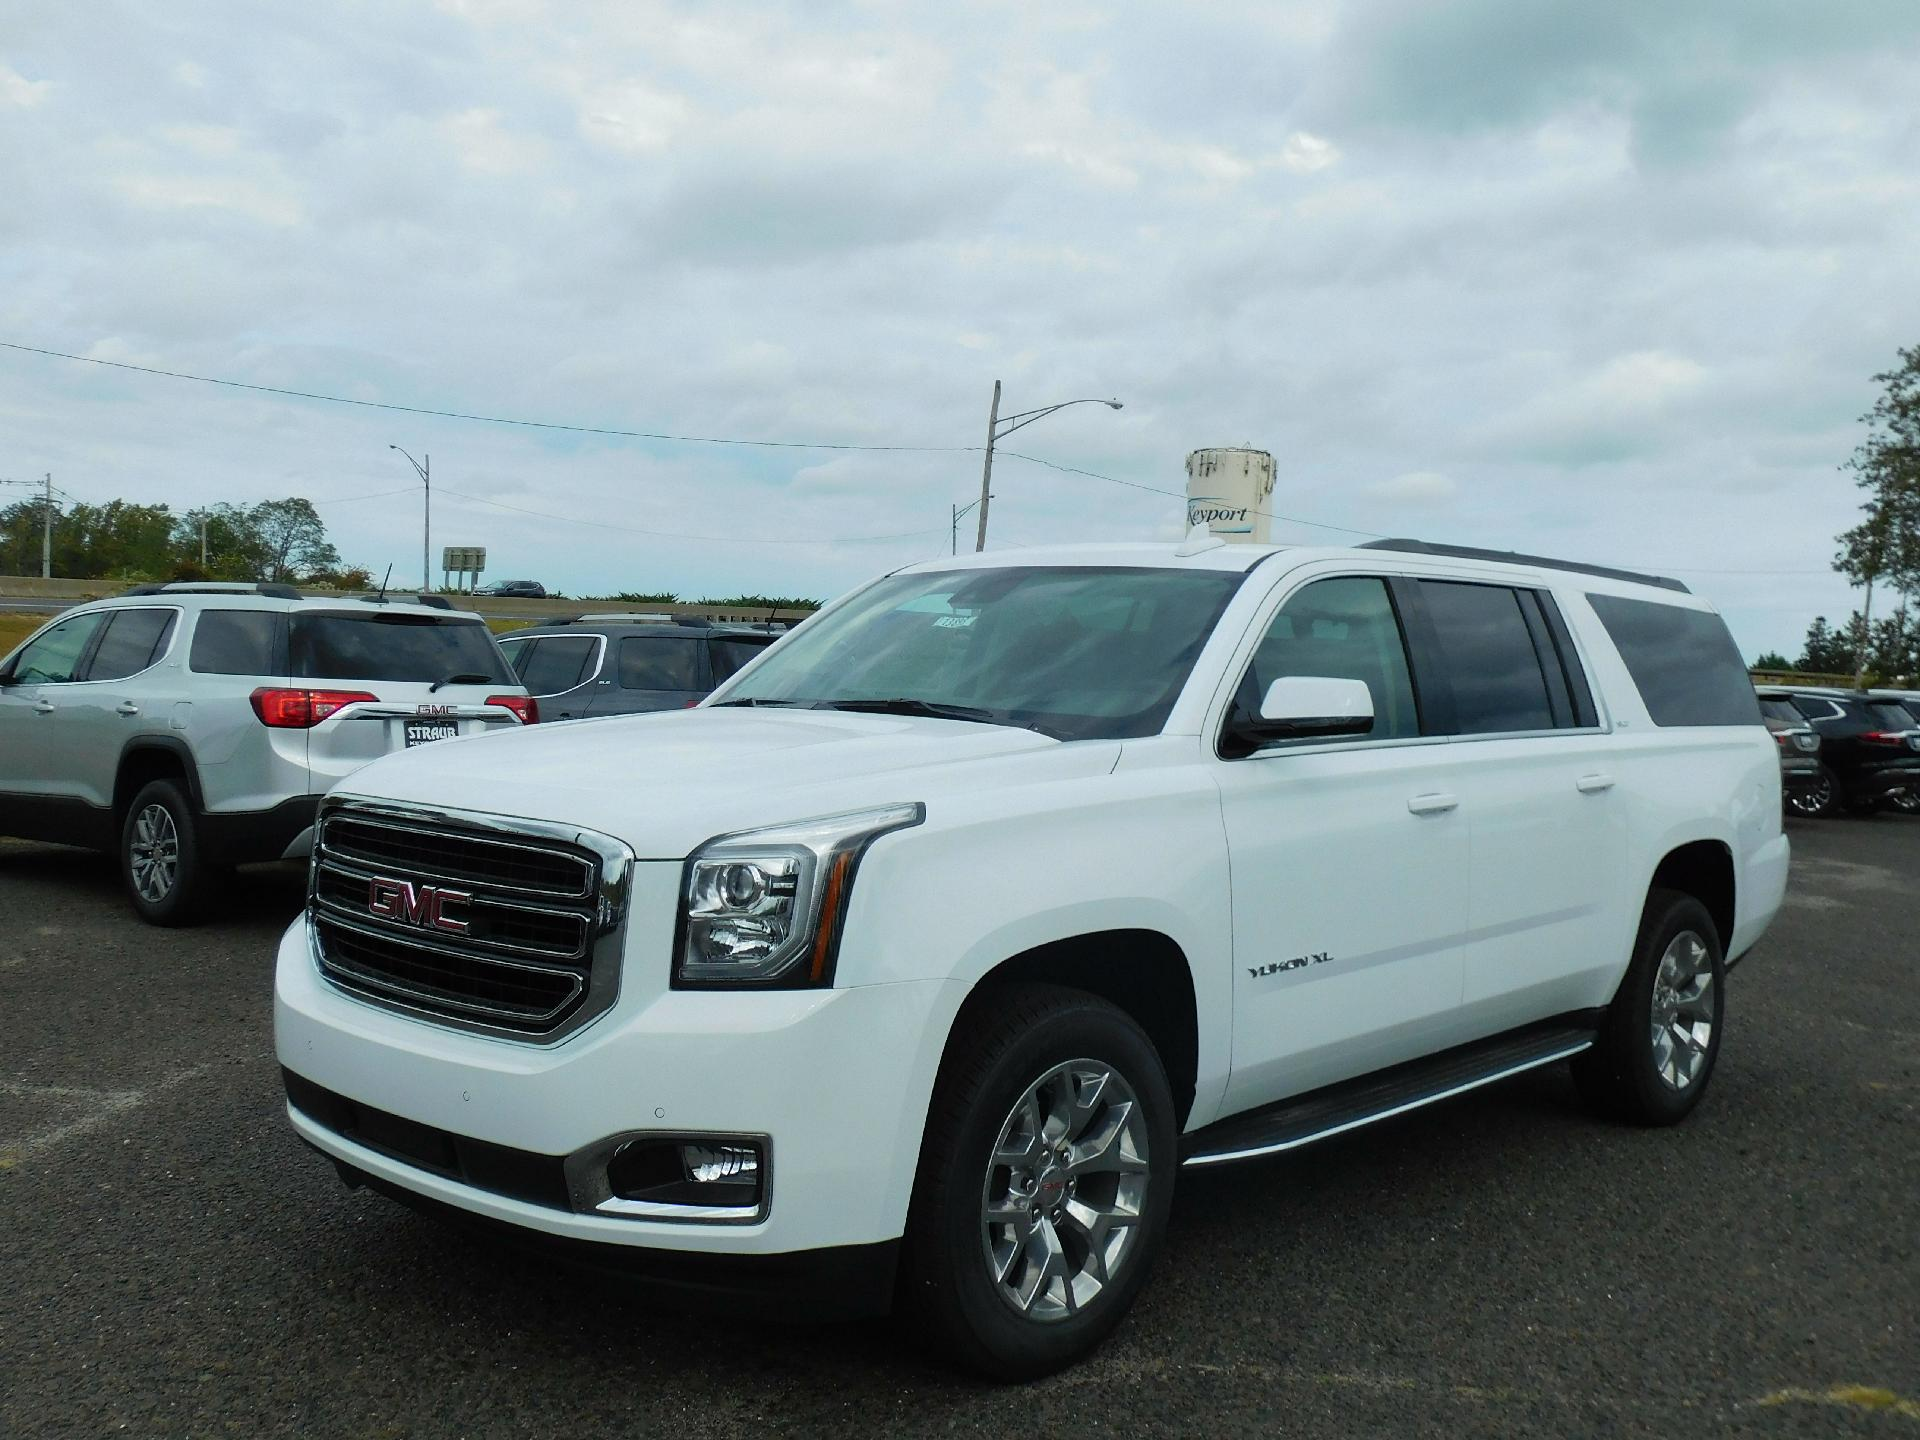 Buick Gmc Beautiful New and Used Cars at Straub Motors Buick Gmc In Keyport